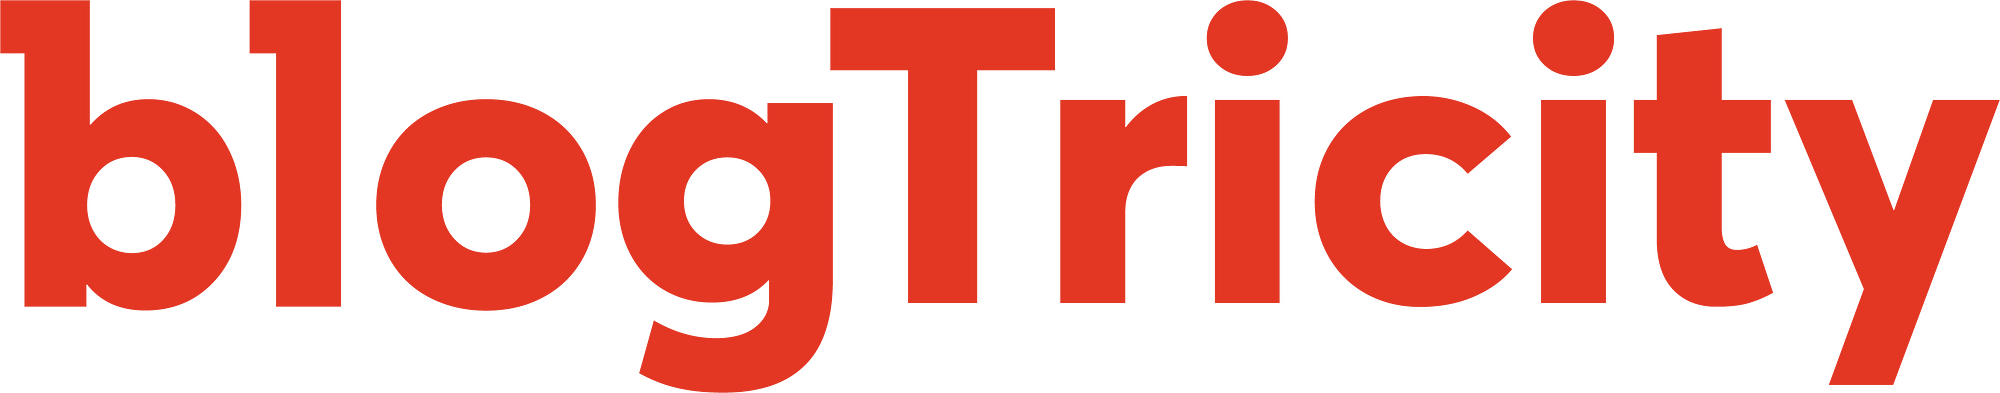 blog tricity name logo